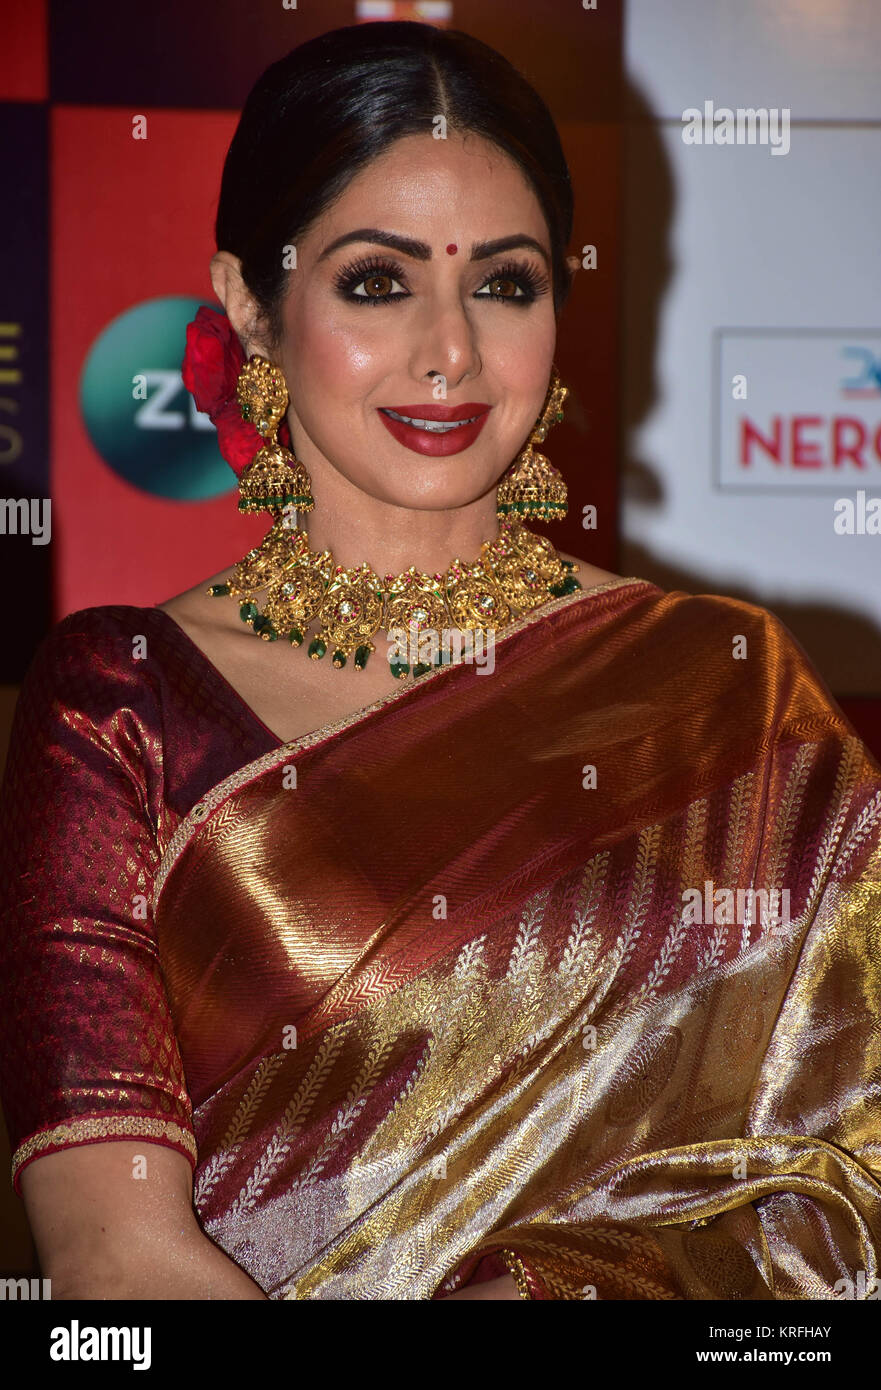 Mumbai, India. 19th Dec, 2017. Indian film actress Sridevi attend the Red carpet event of Zee Cine Awards 2018 at Stock Photo